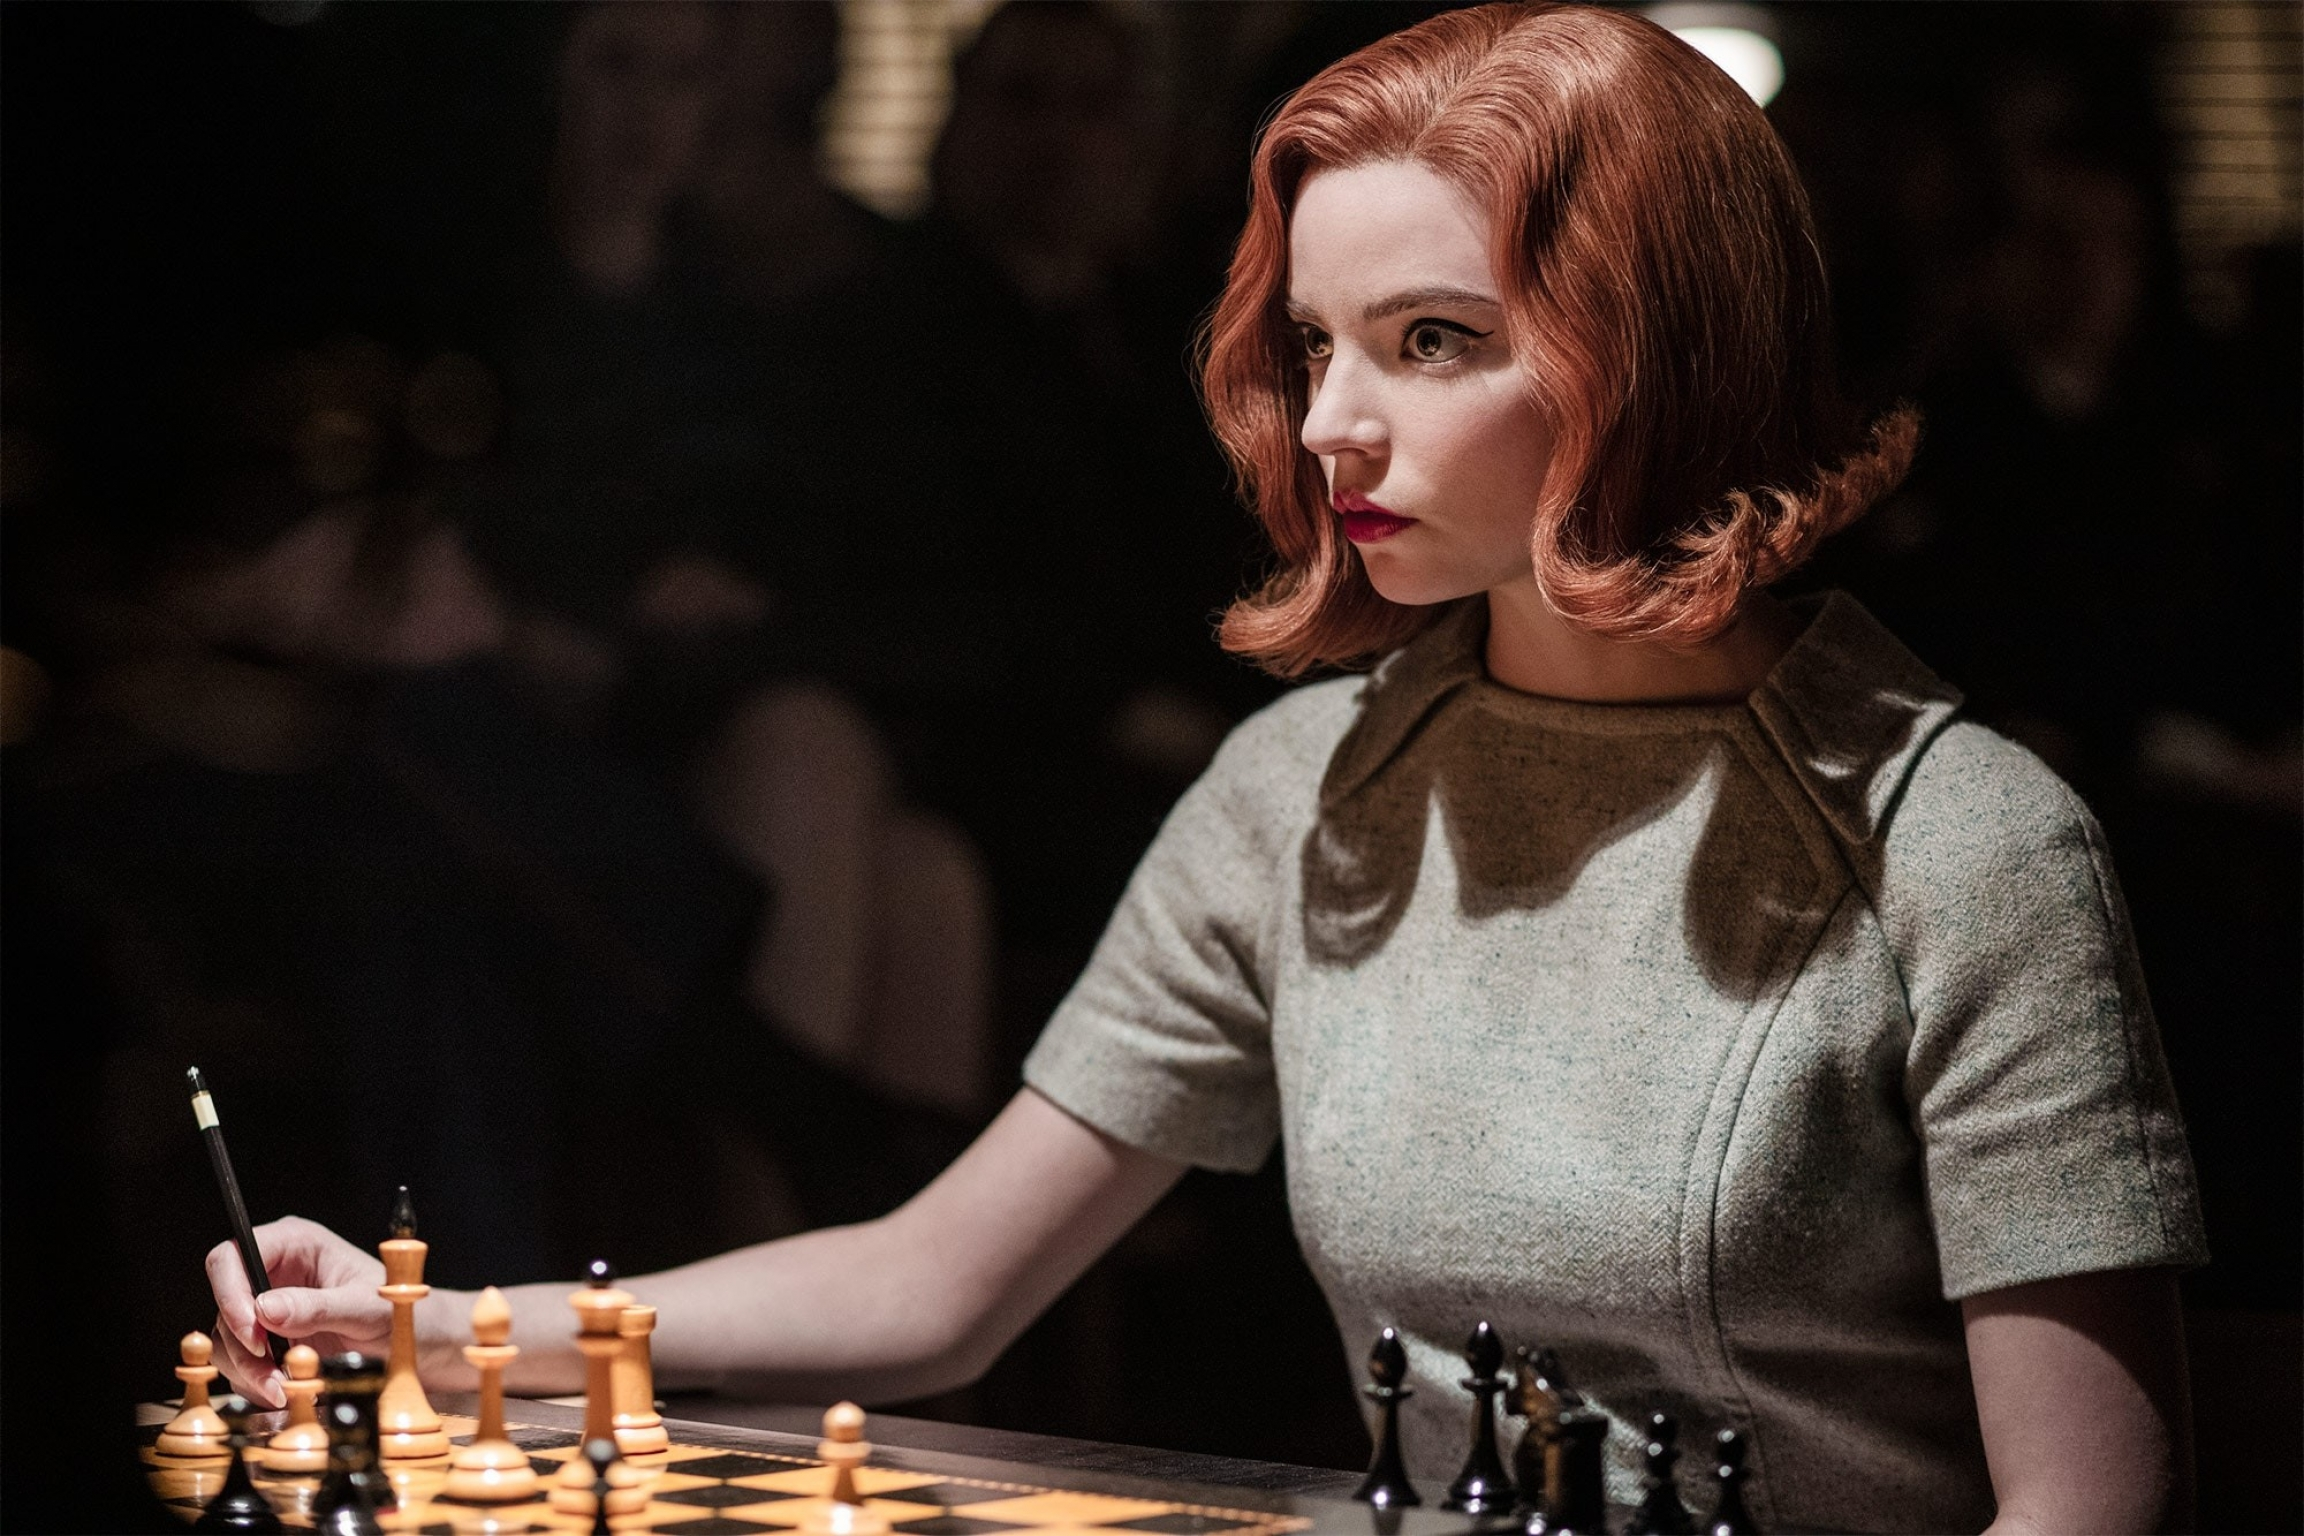 The show has inspired a new generation of chess players worldwide, as people remain indoors and glued to their streaming devices during the pandemic.